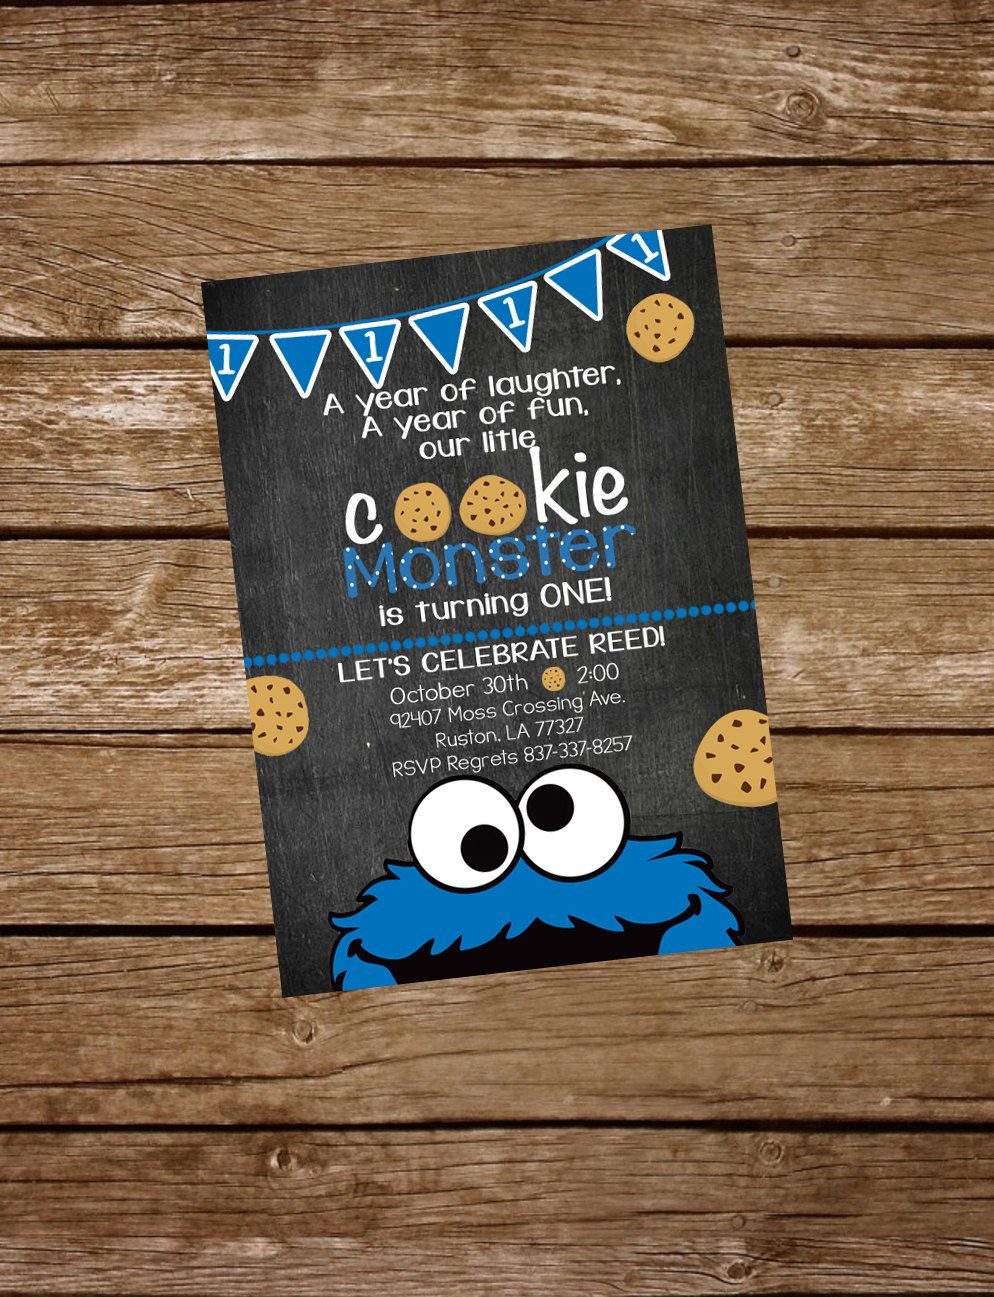 wording ideas forst birthday party invitation%0A Cookie Monster Birthday Invite  Cookie Monster Invitation  Cookie Monster First  Birthday Invitation  Cookie Monster is turning one invite